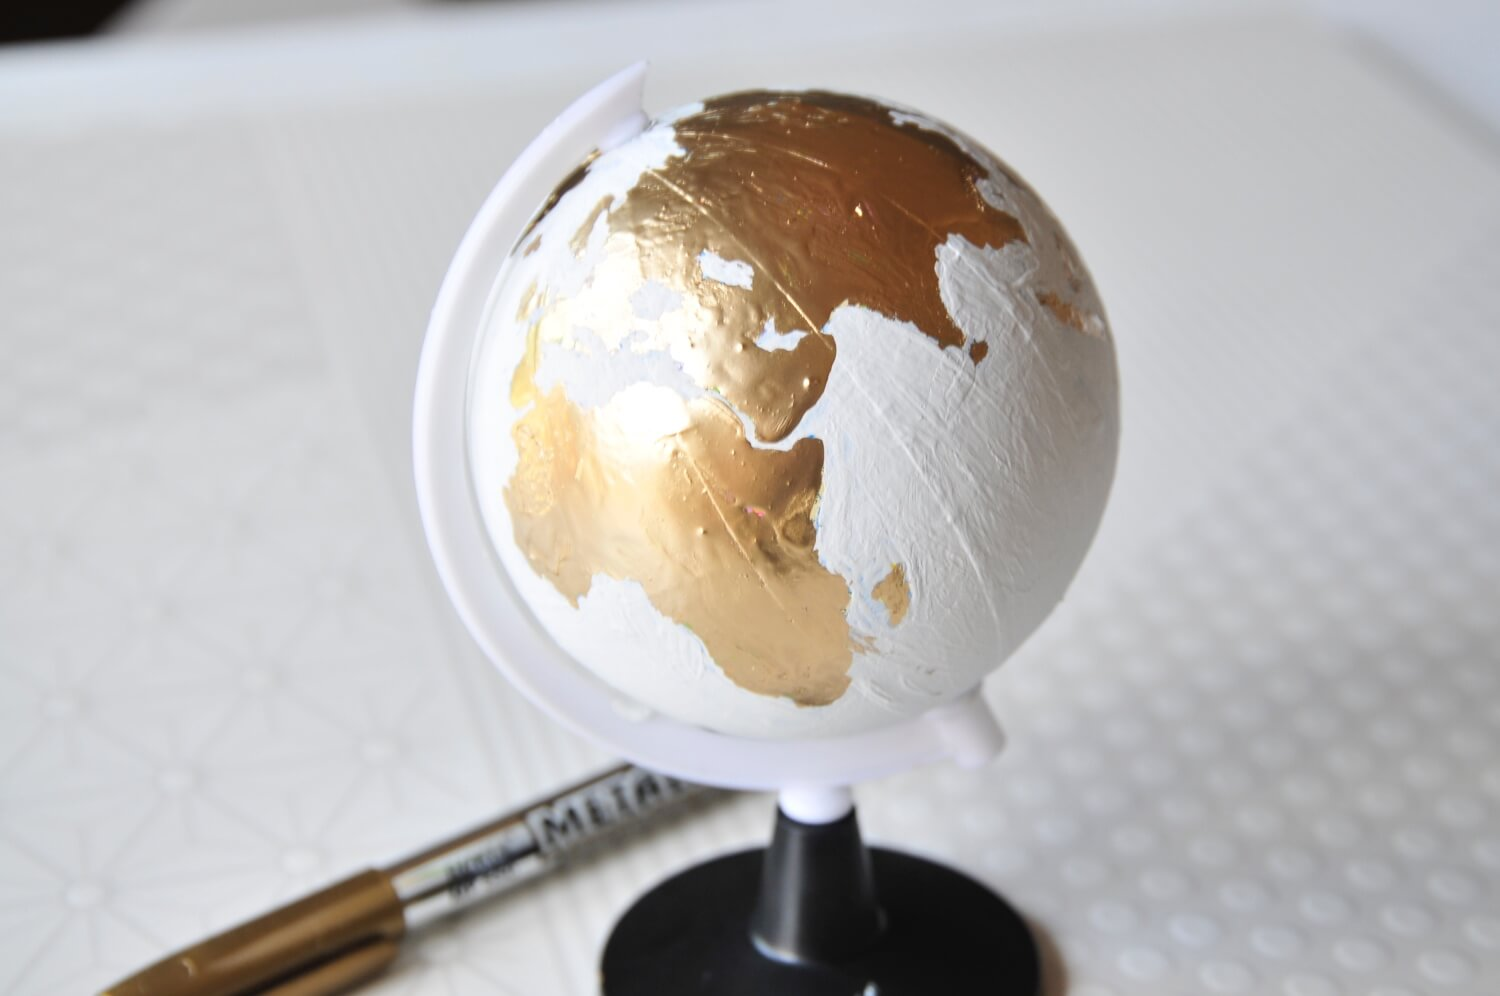 finished chalkboard painted globe craft tutorial - subscription box